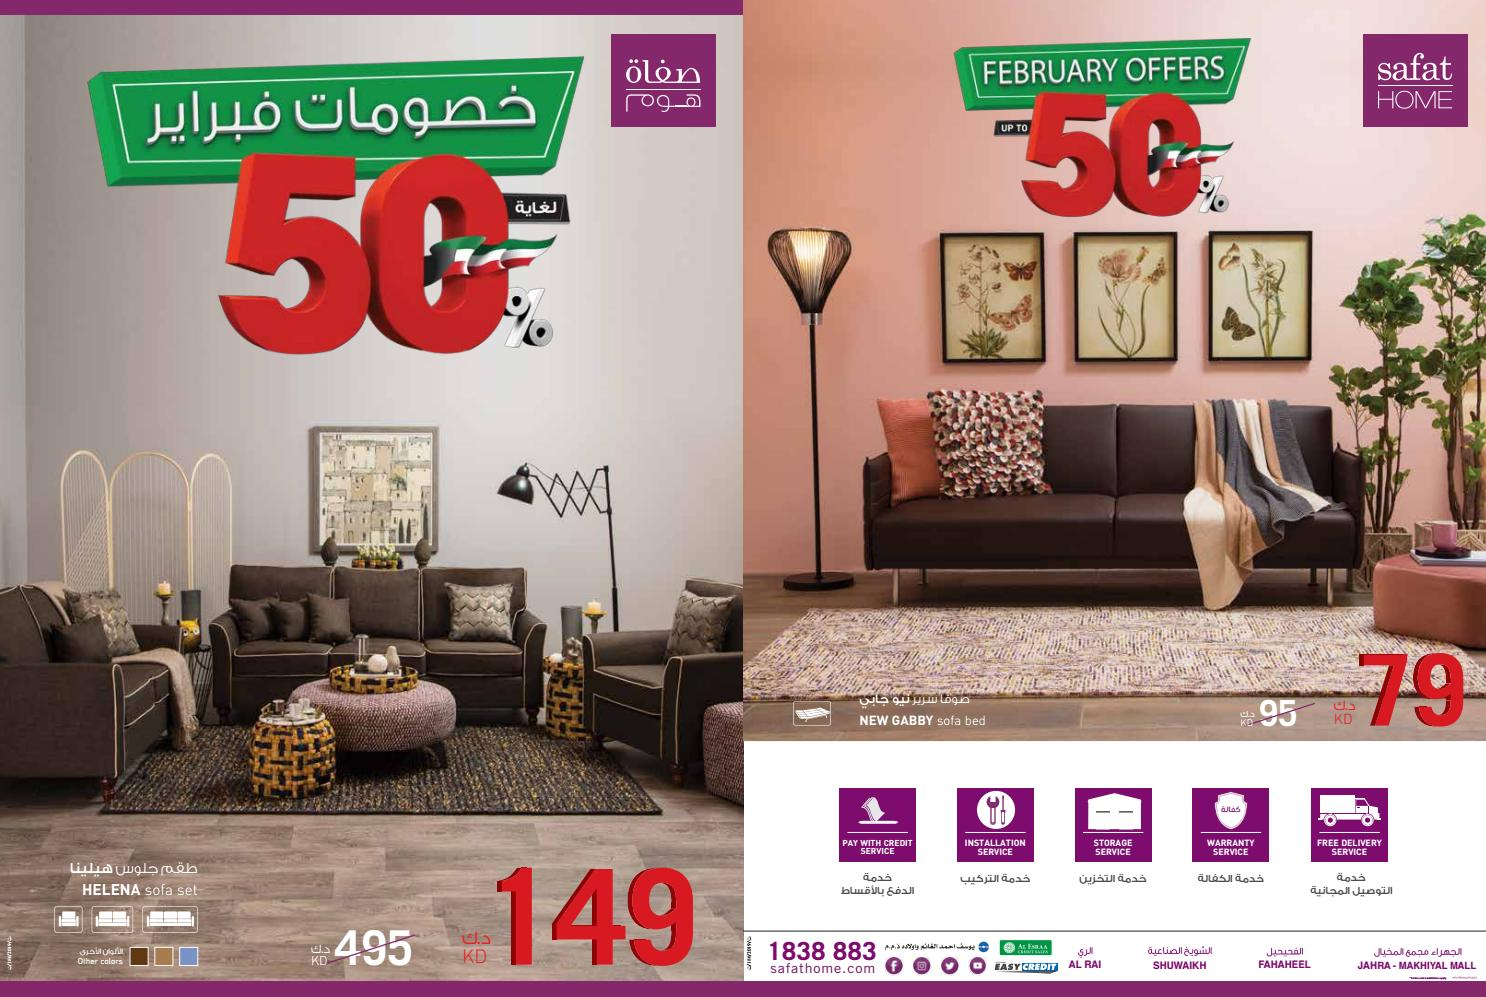 Pleasant February Discounts Up To 50 Off By Safat Home Issuu Cjindustries Chair Design For Home Cjindustriesco